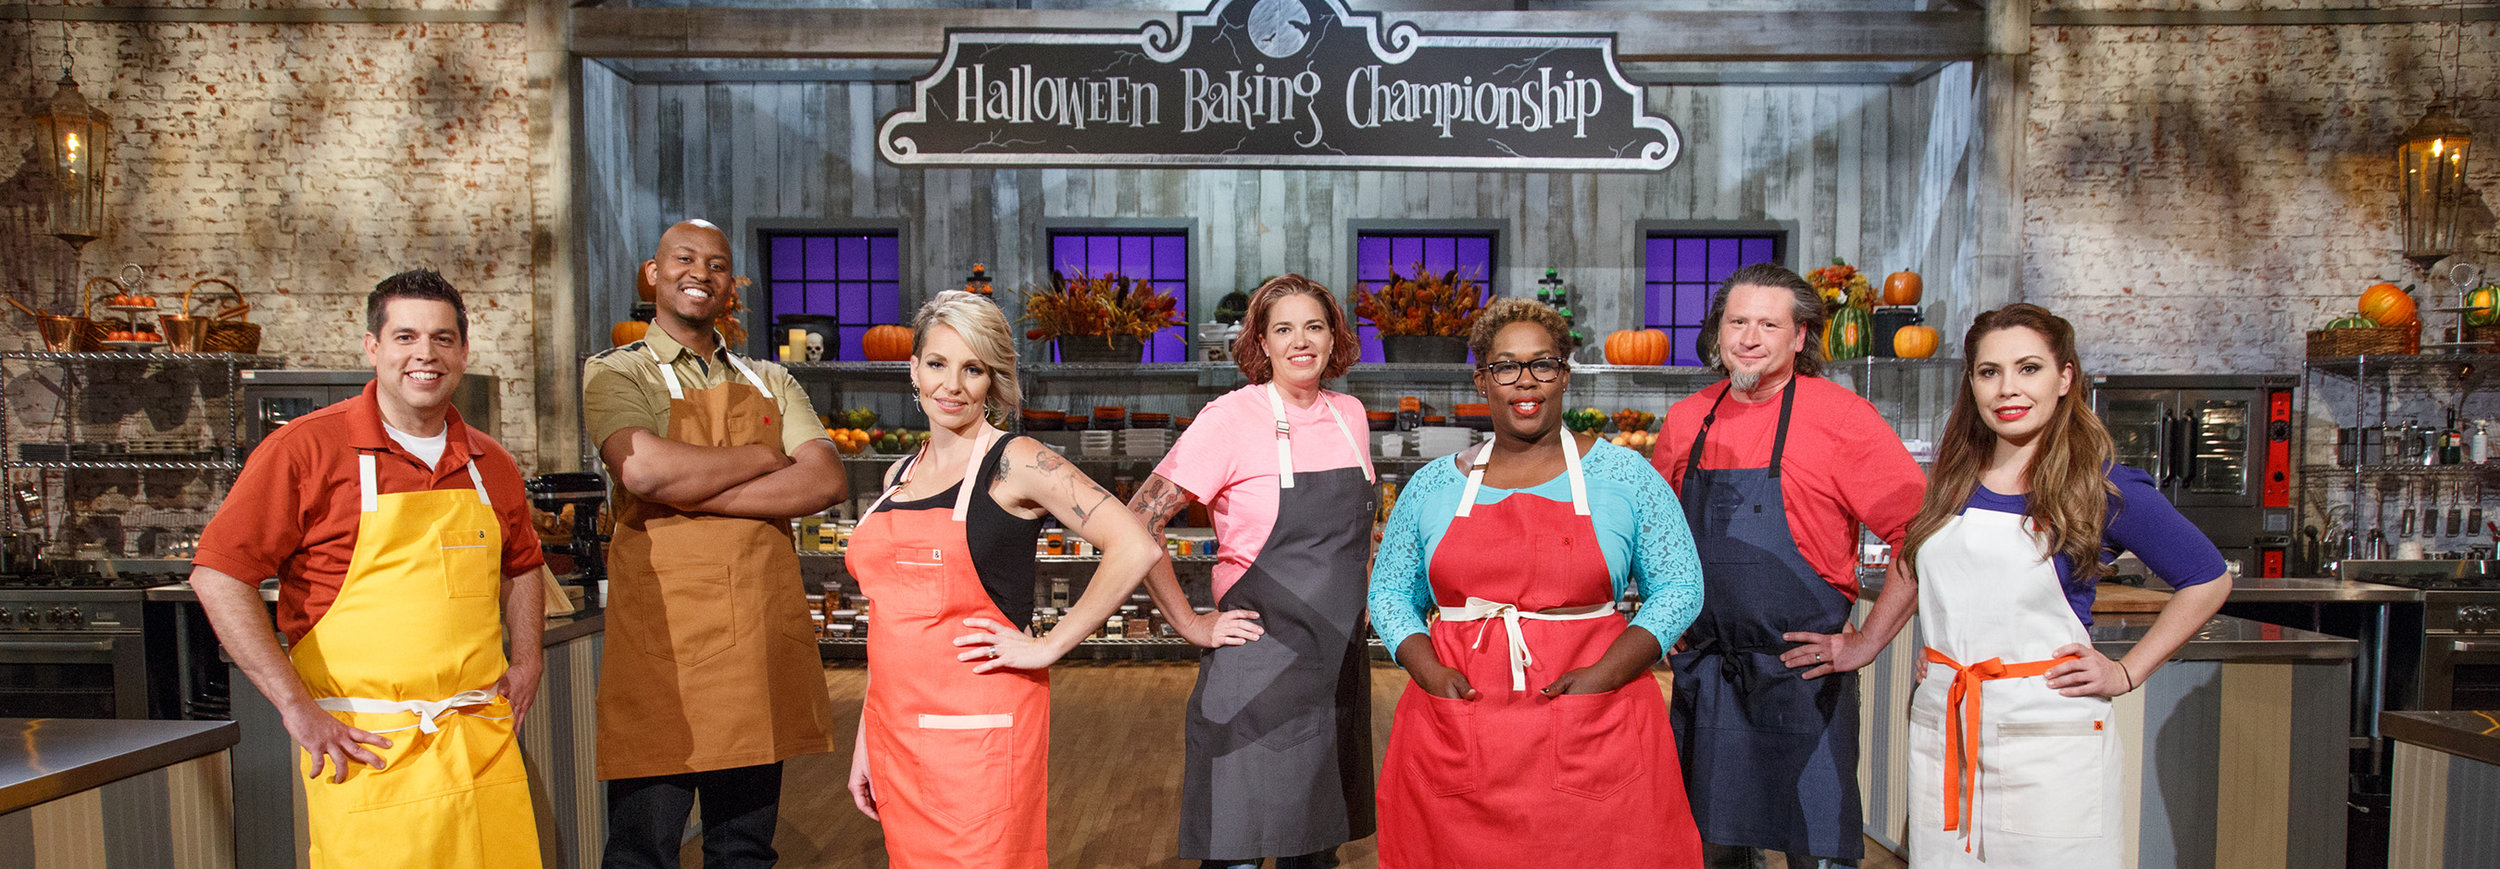 spooky-sweets-and-terrifying-treats-abound-on-the-return-of-halloween-baking-championship-null-HR.jpg